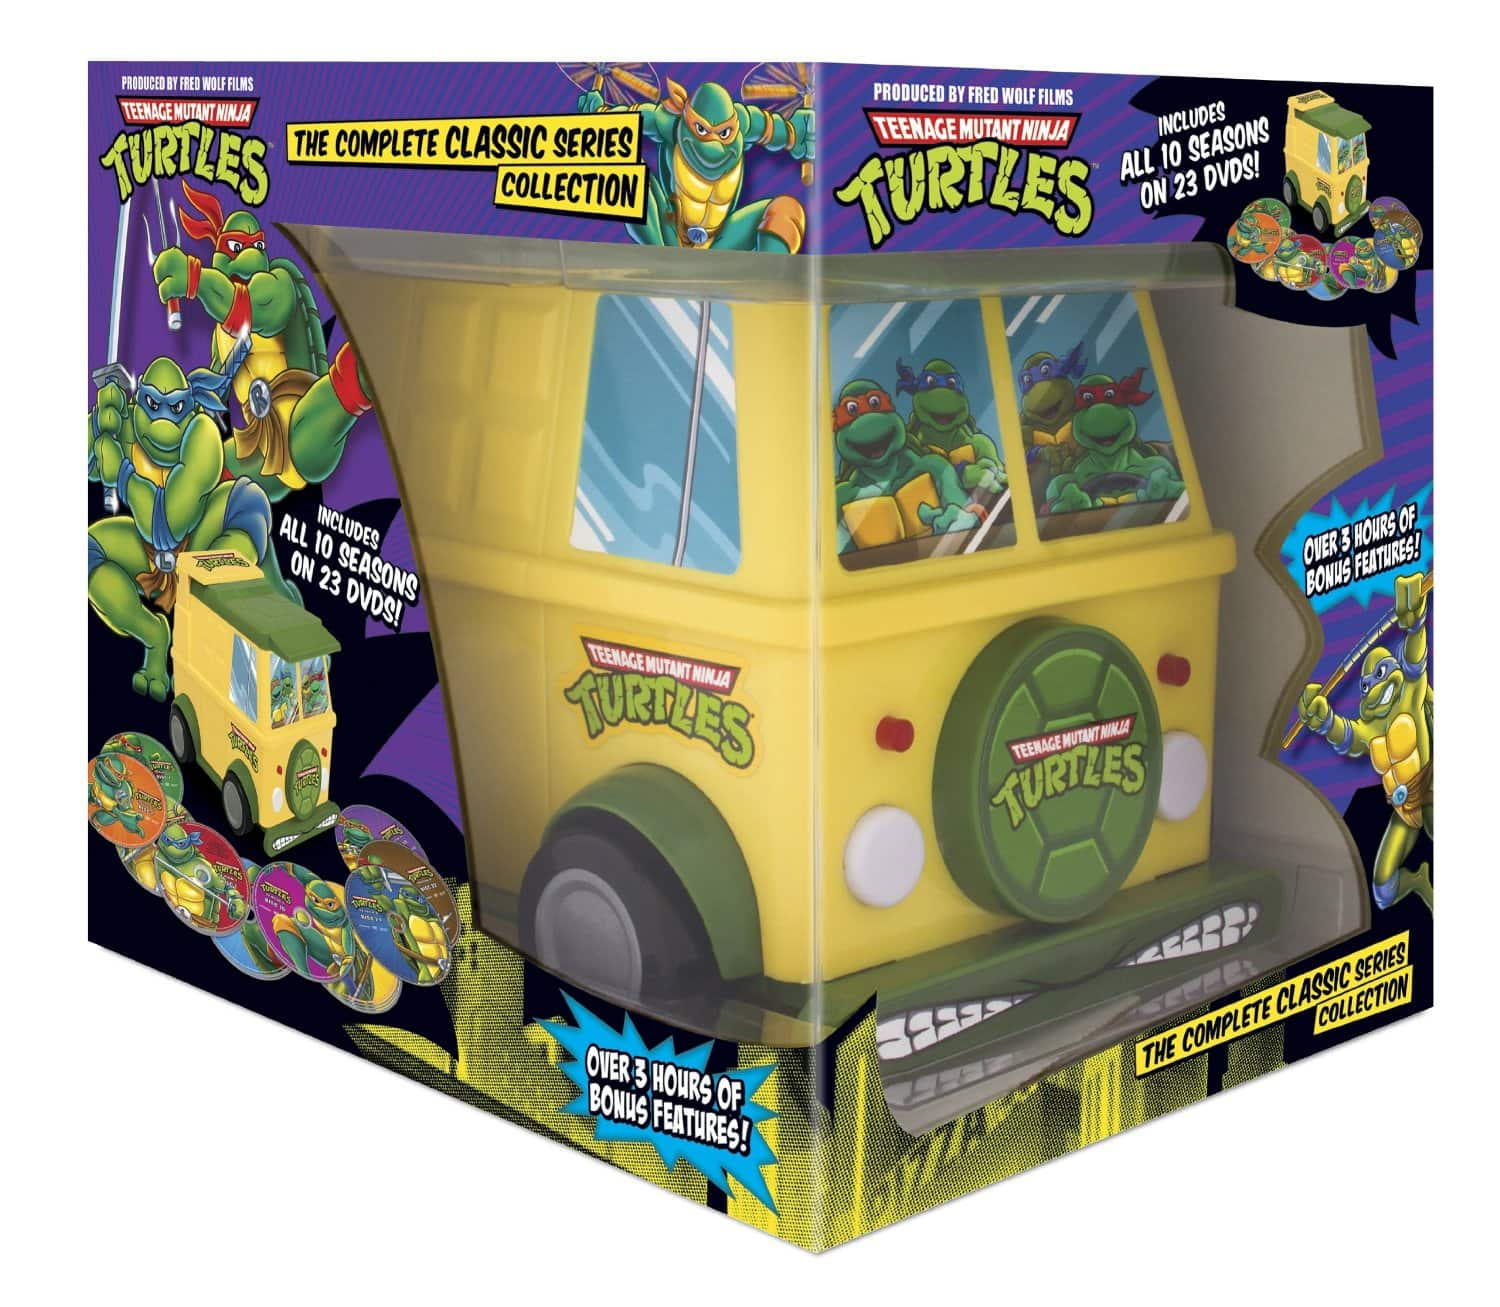 Teenage Mutant Ninja Turtles: The Complete Classic Series Collection (DVD) $47.74 Shipped